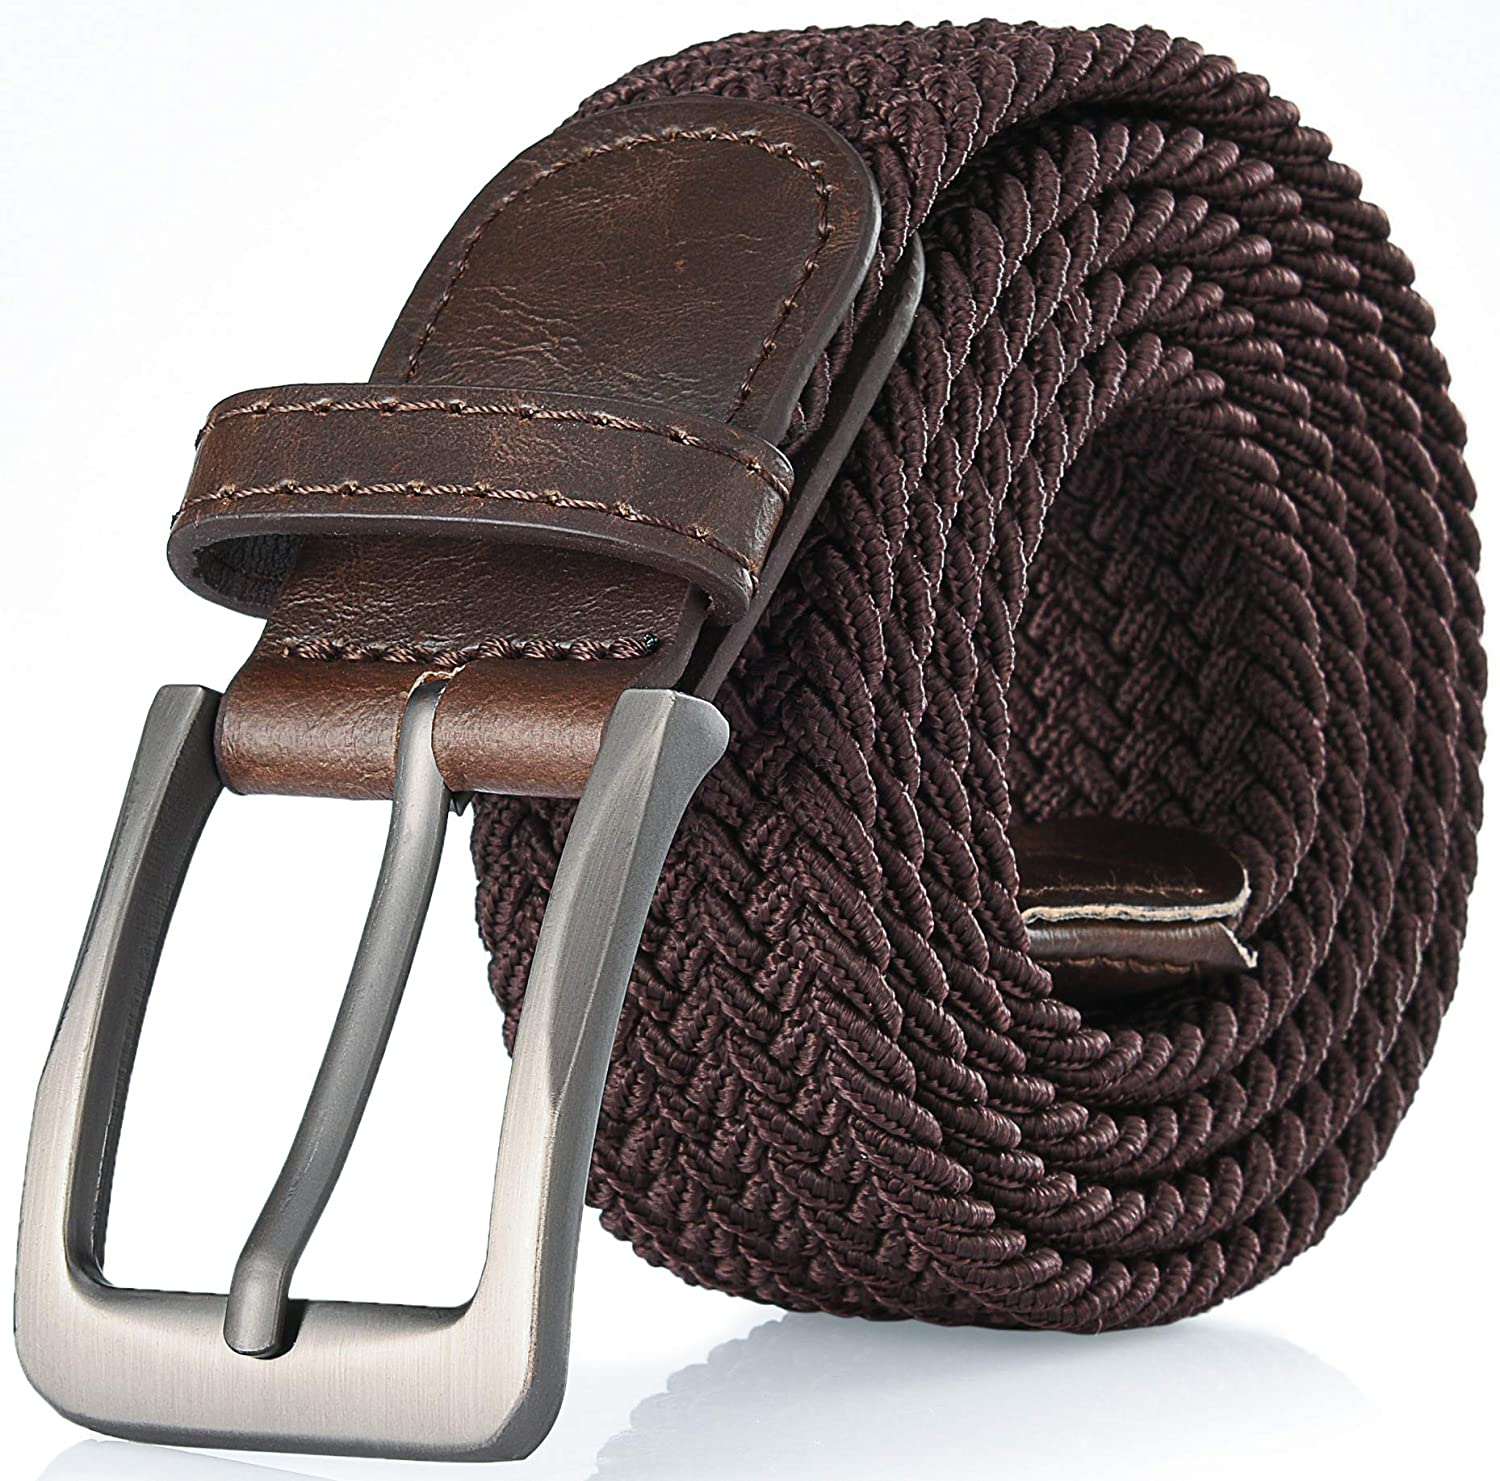 Gallery Seven Woven Elastic Braided Belt For Men - Fabric Stretch Casual Belt